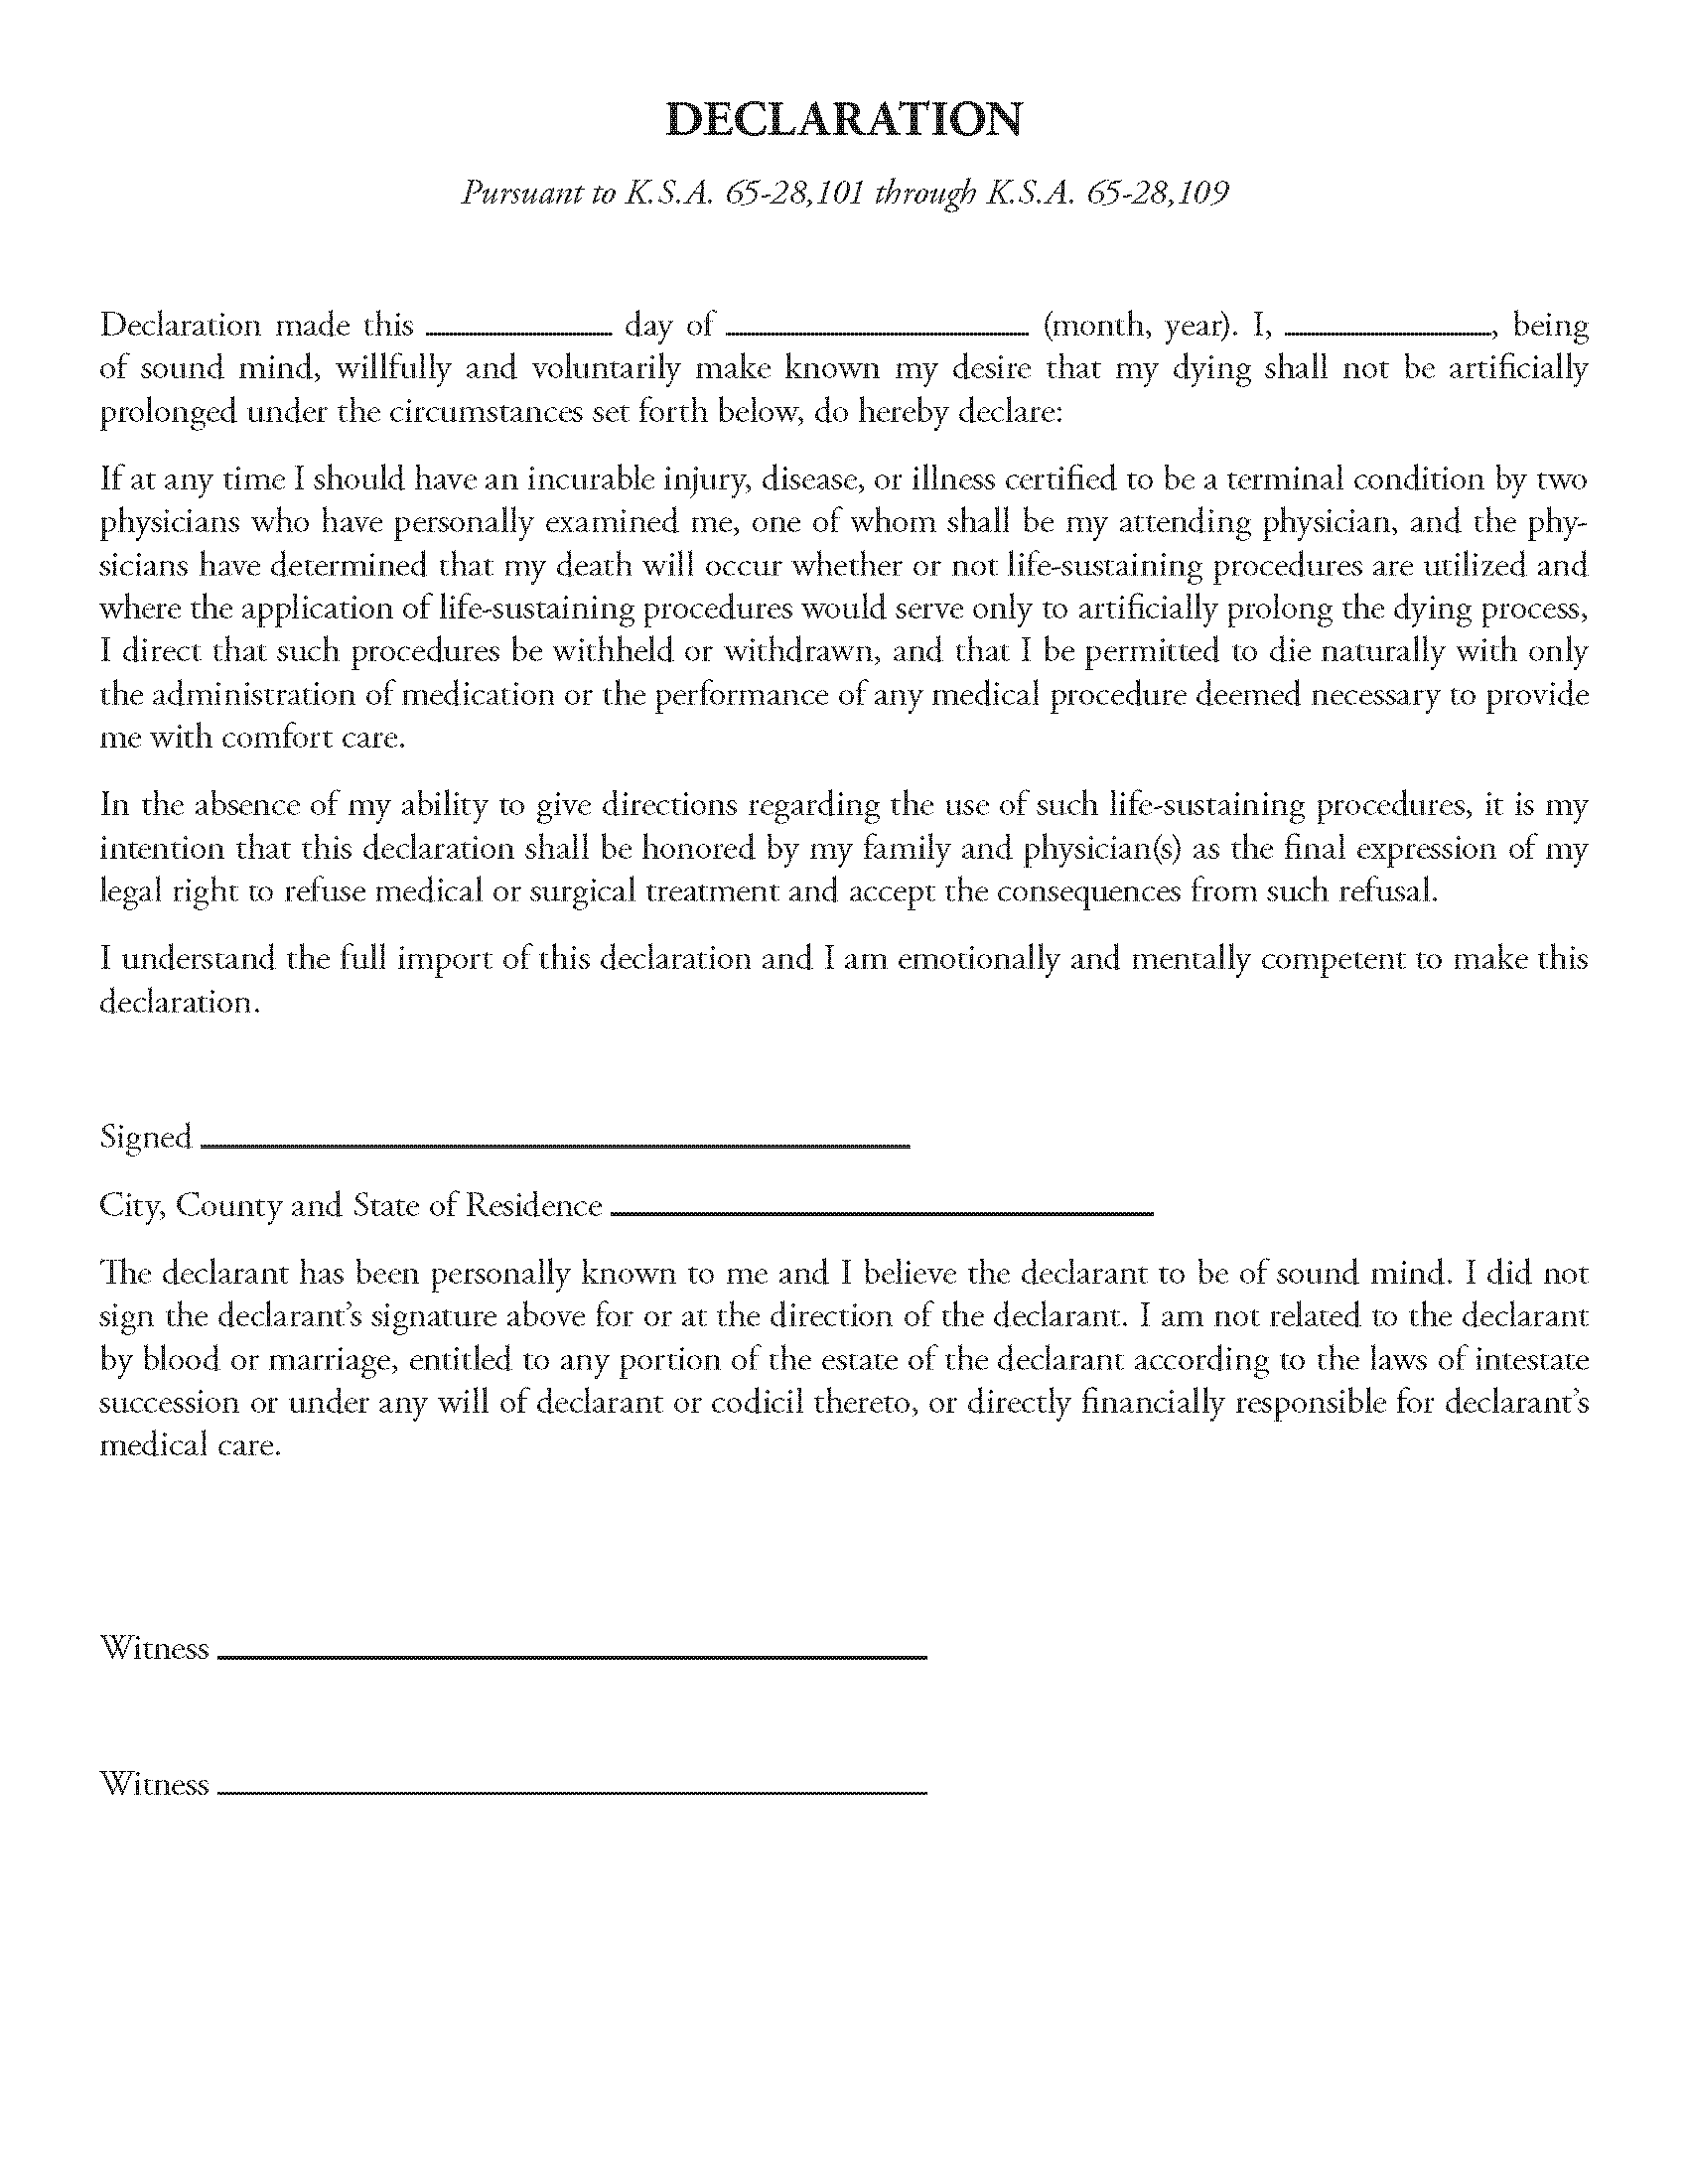 Kansas Living Will Form Free Printable Legal Forms